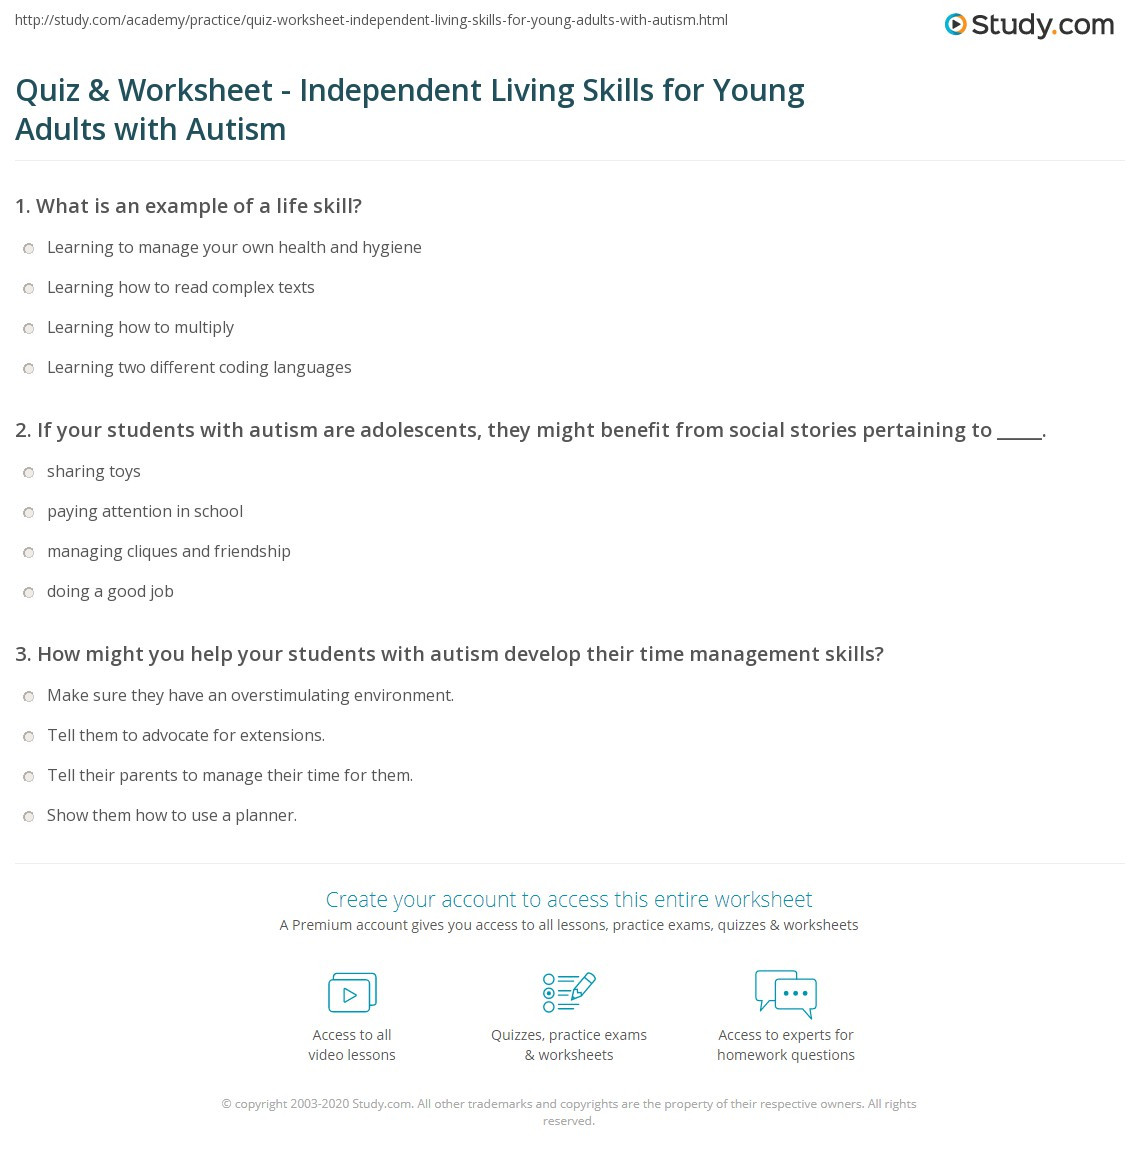 Daily Living Skills Worksheets Quiz & Worksheet Independent Living Skills for Young